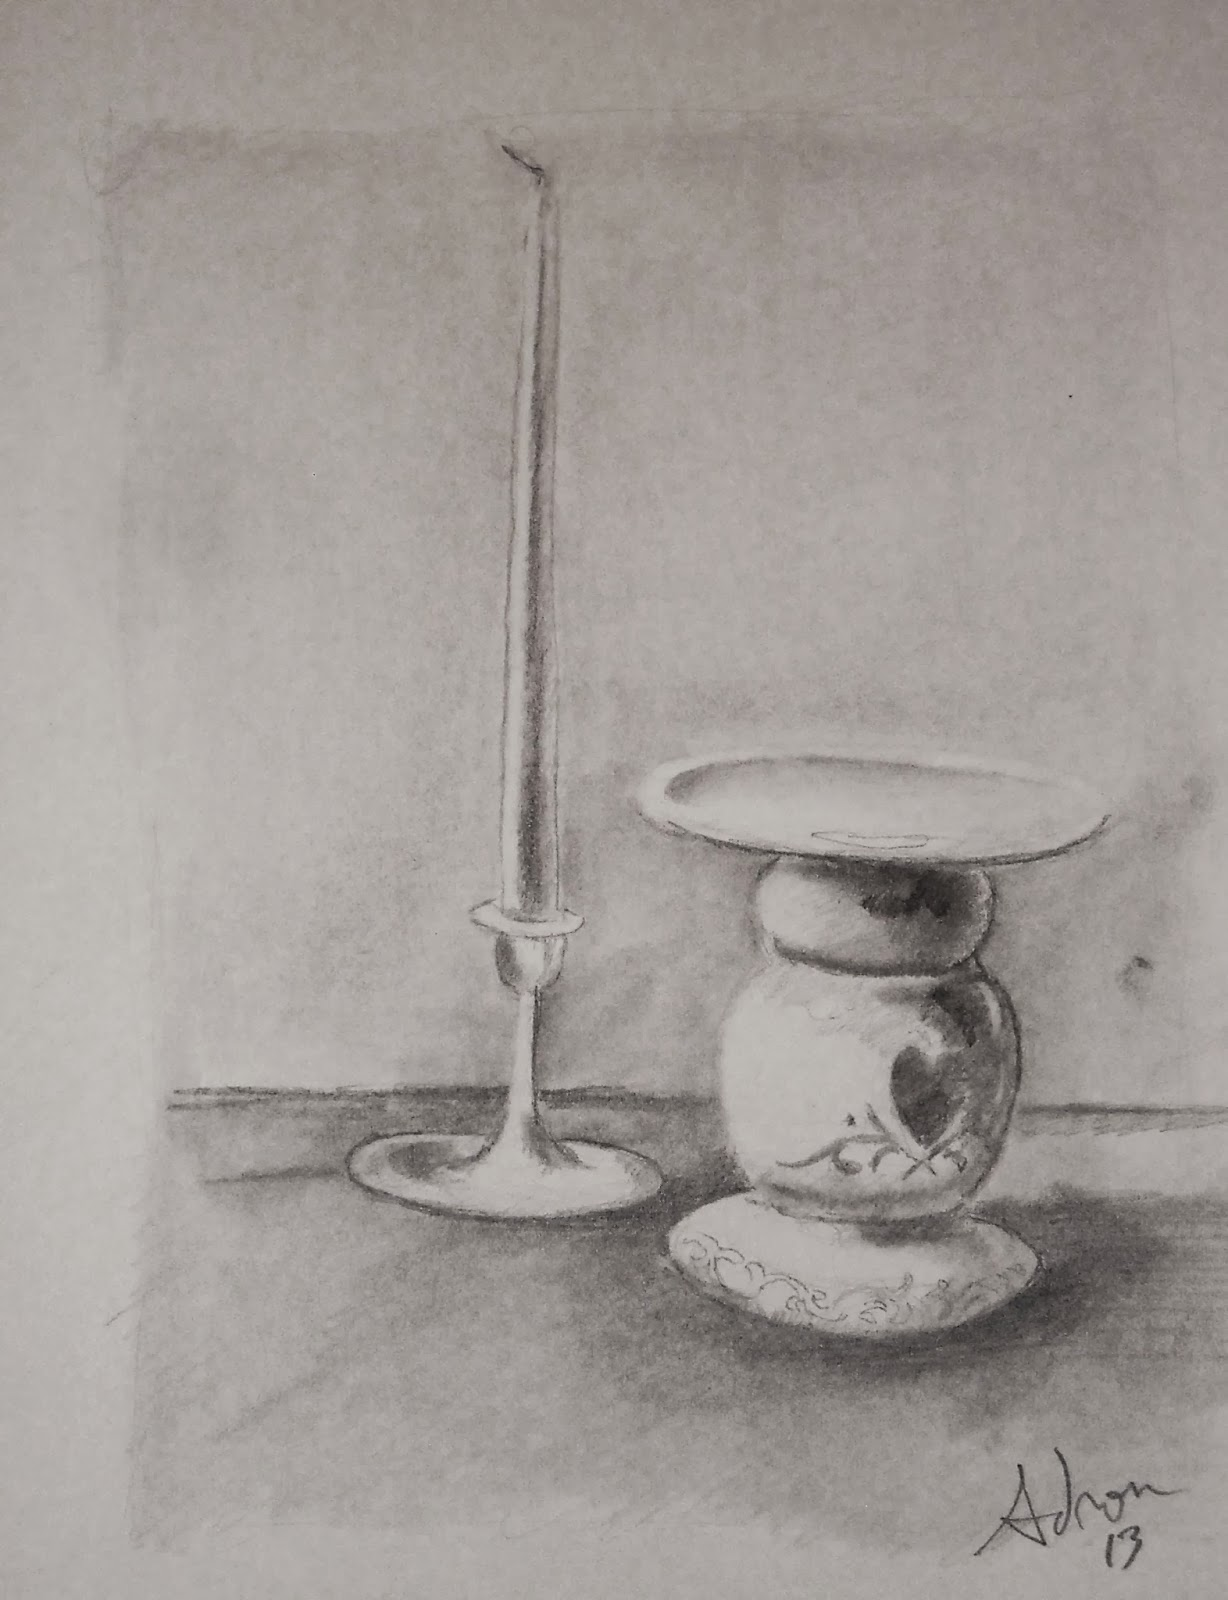 Artist adron candlestick and candle a quick sketch in pencil